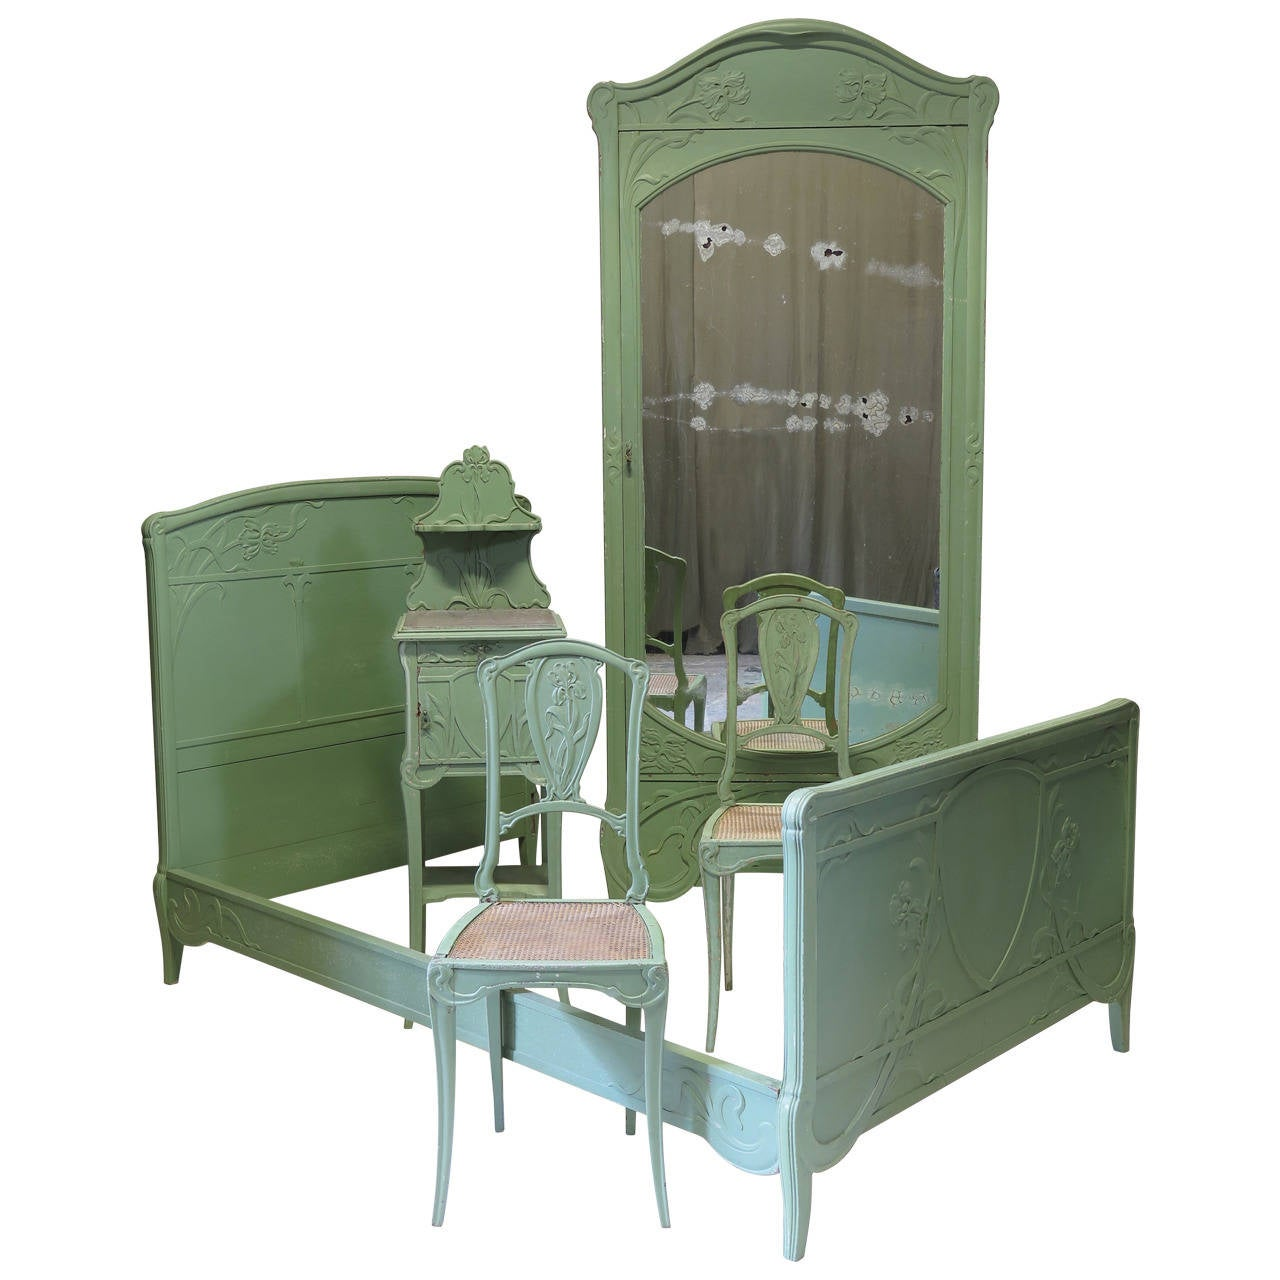 Art Nouveau Bedroom: Art Nouveau Bedroom Set, France, Early 1900s For Sale At